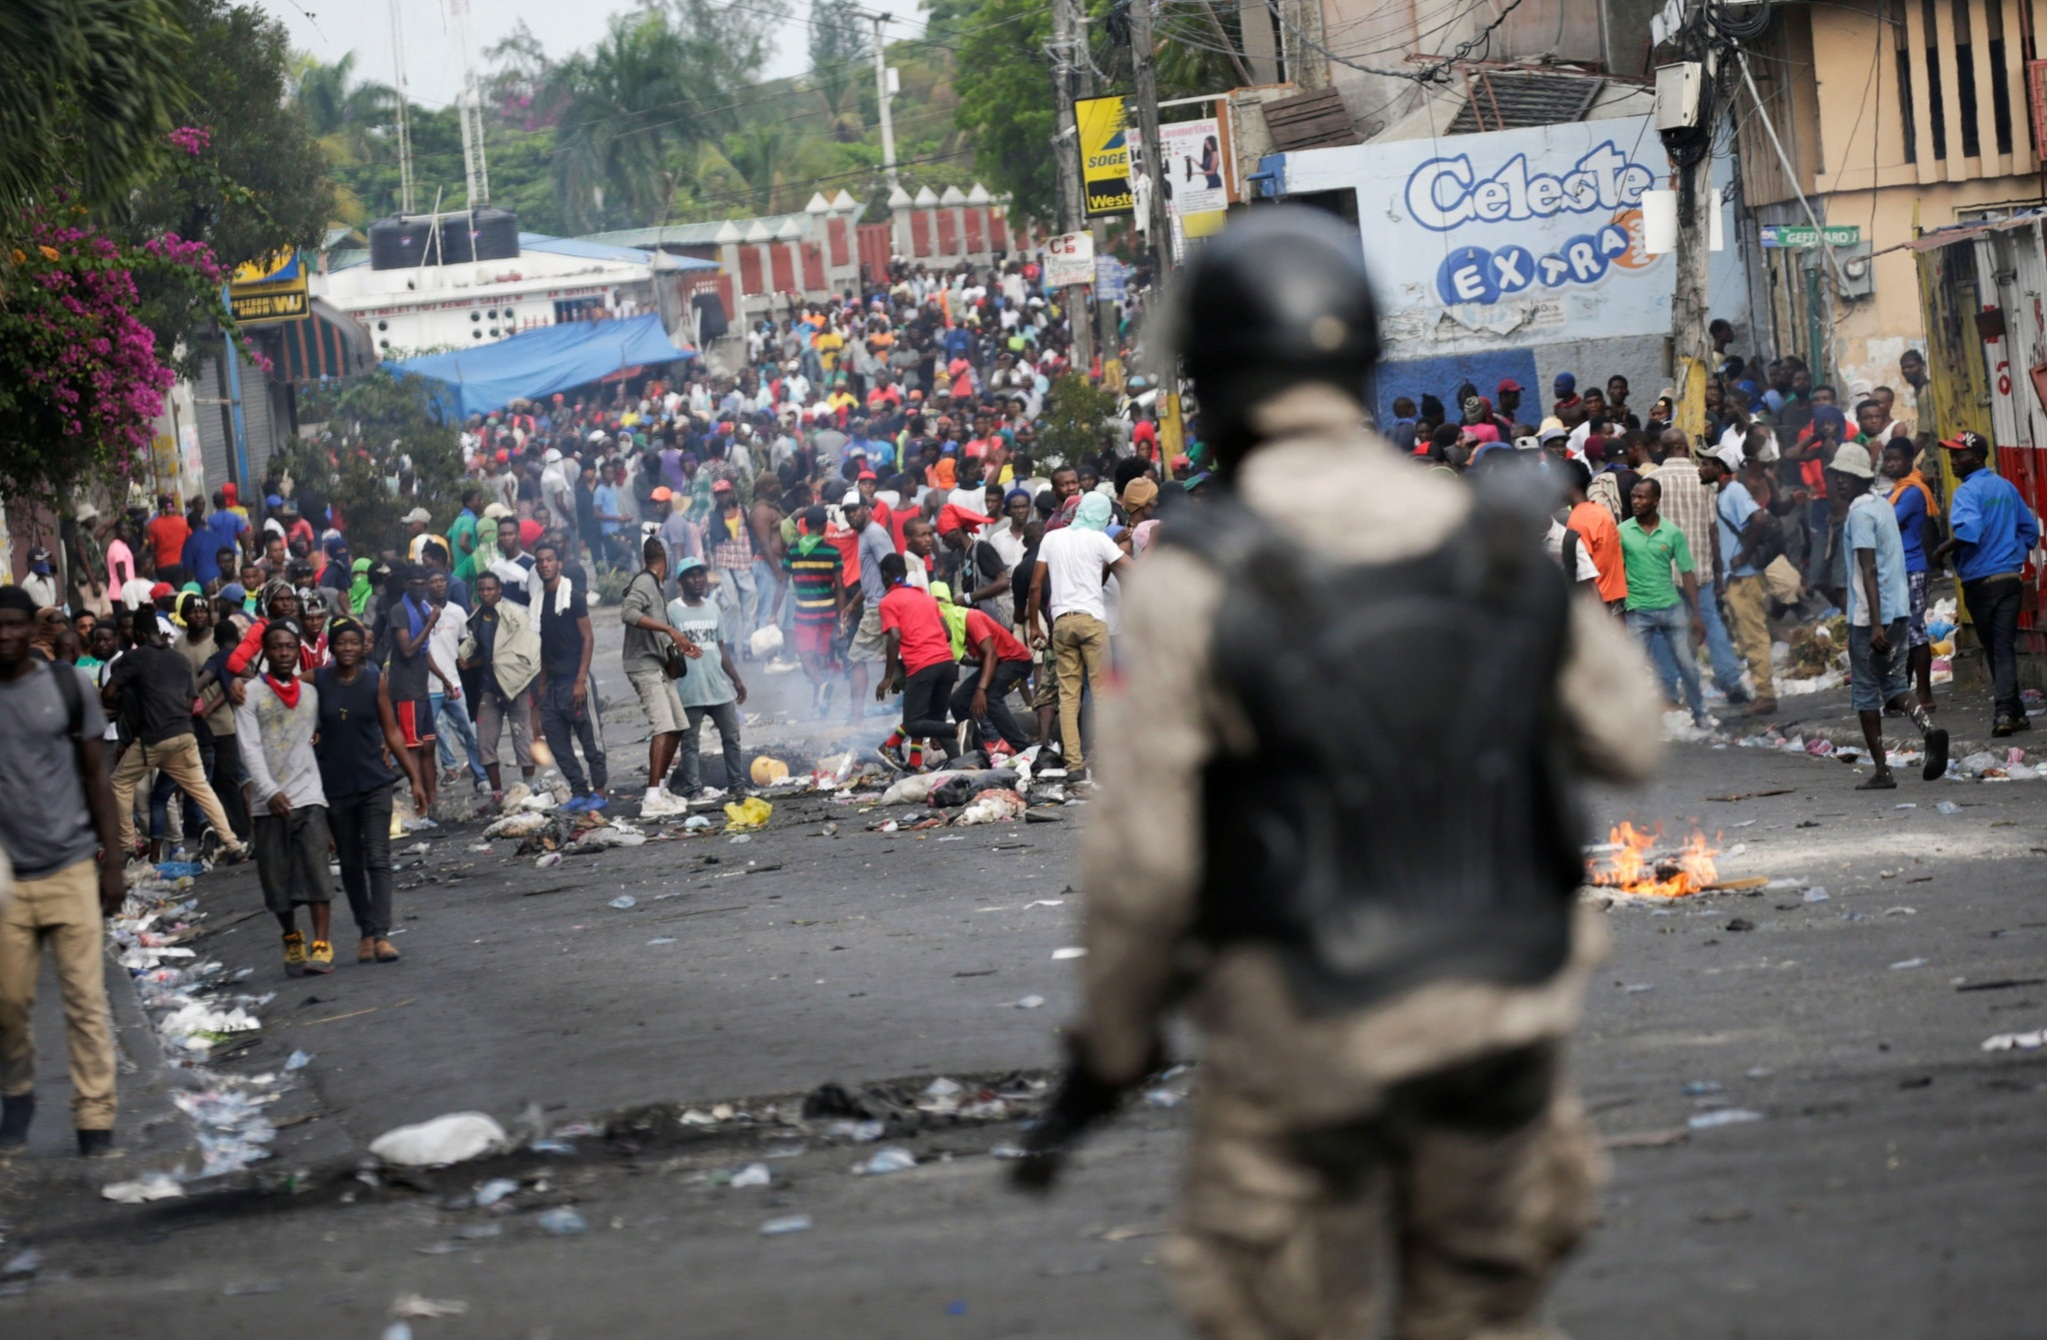 Demonstrators in the streets of Port-au-Prince. Photo credit: Andres Martinez Casares/Reuters